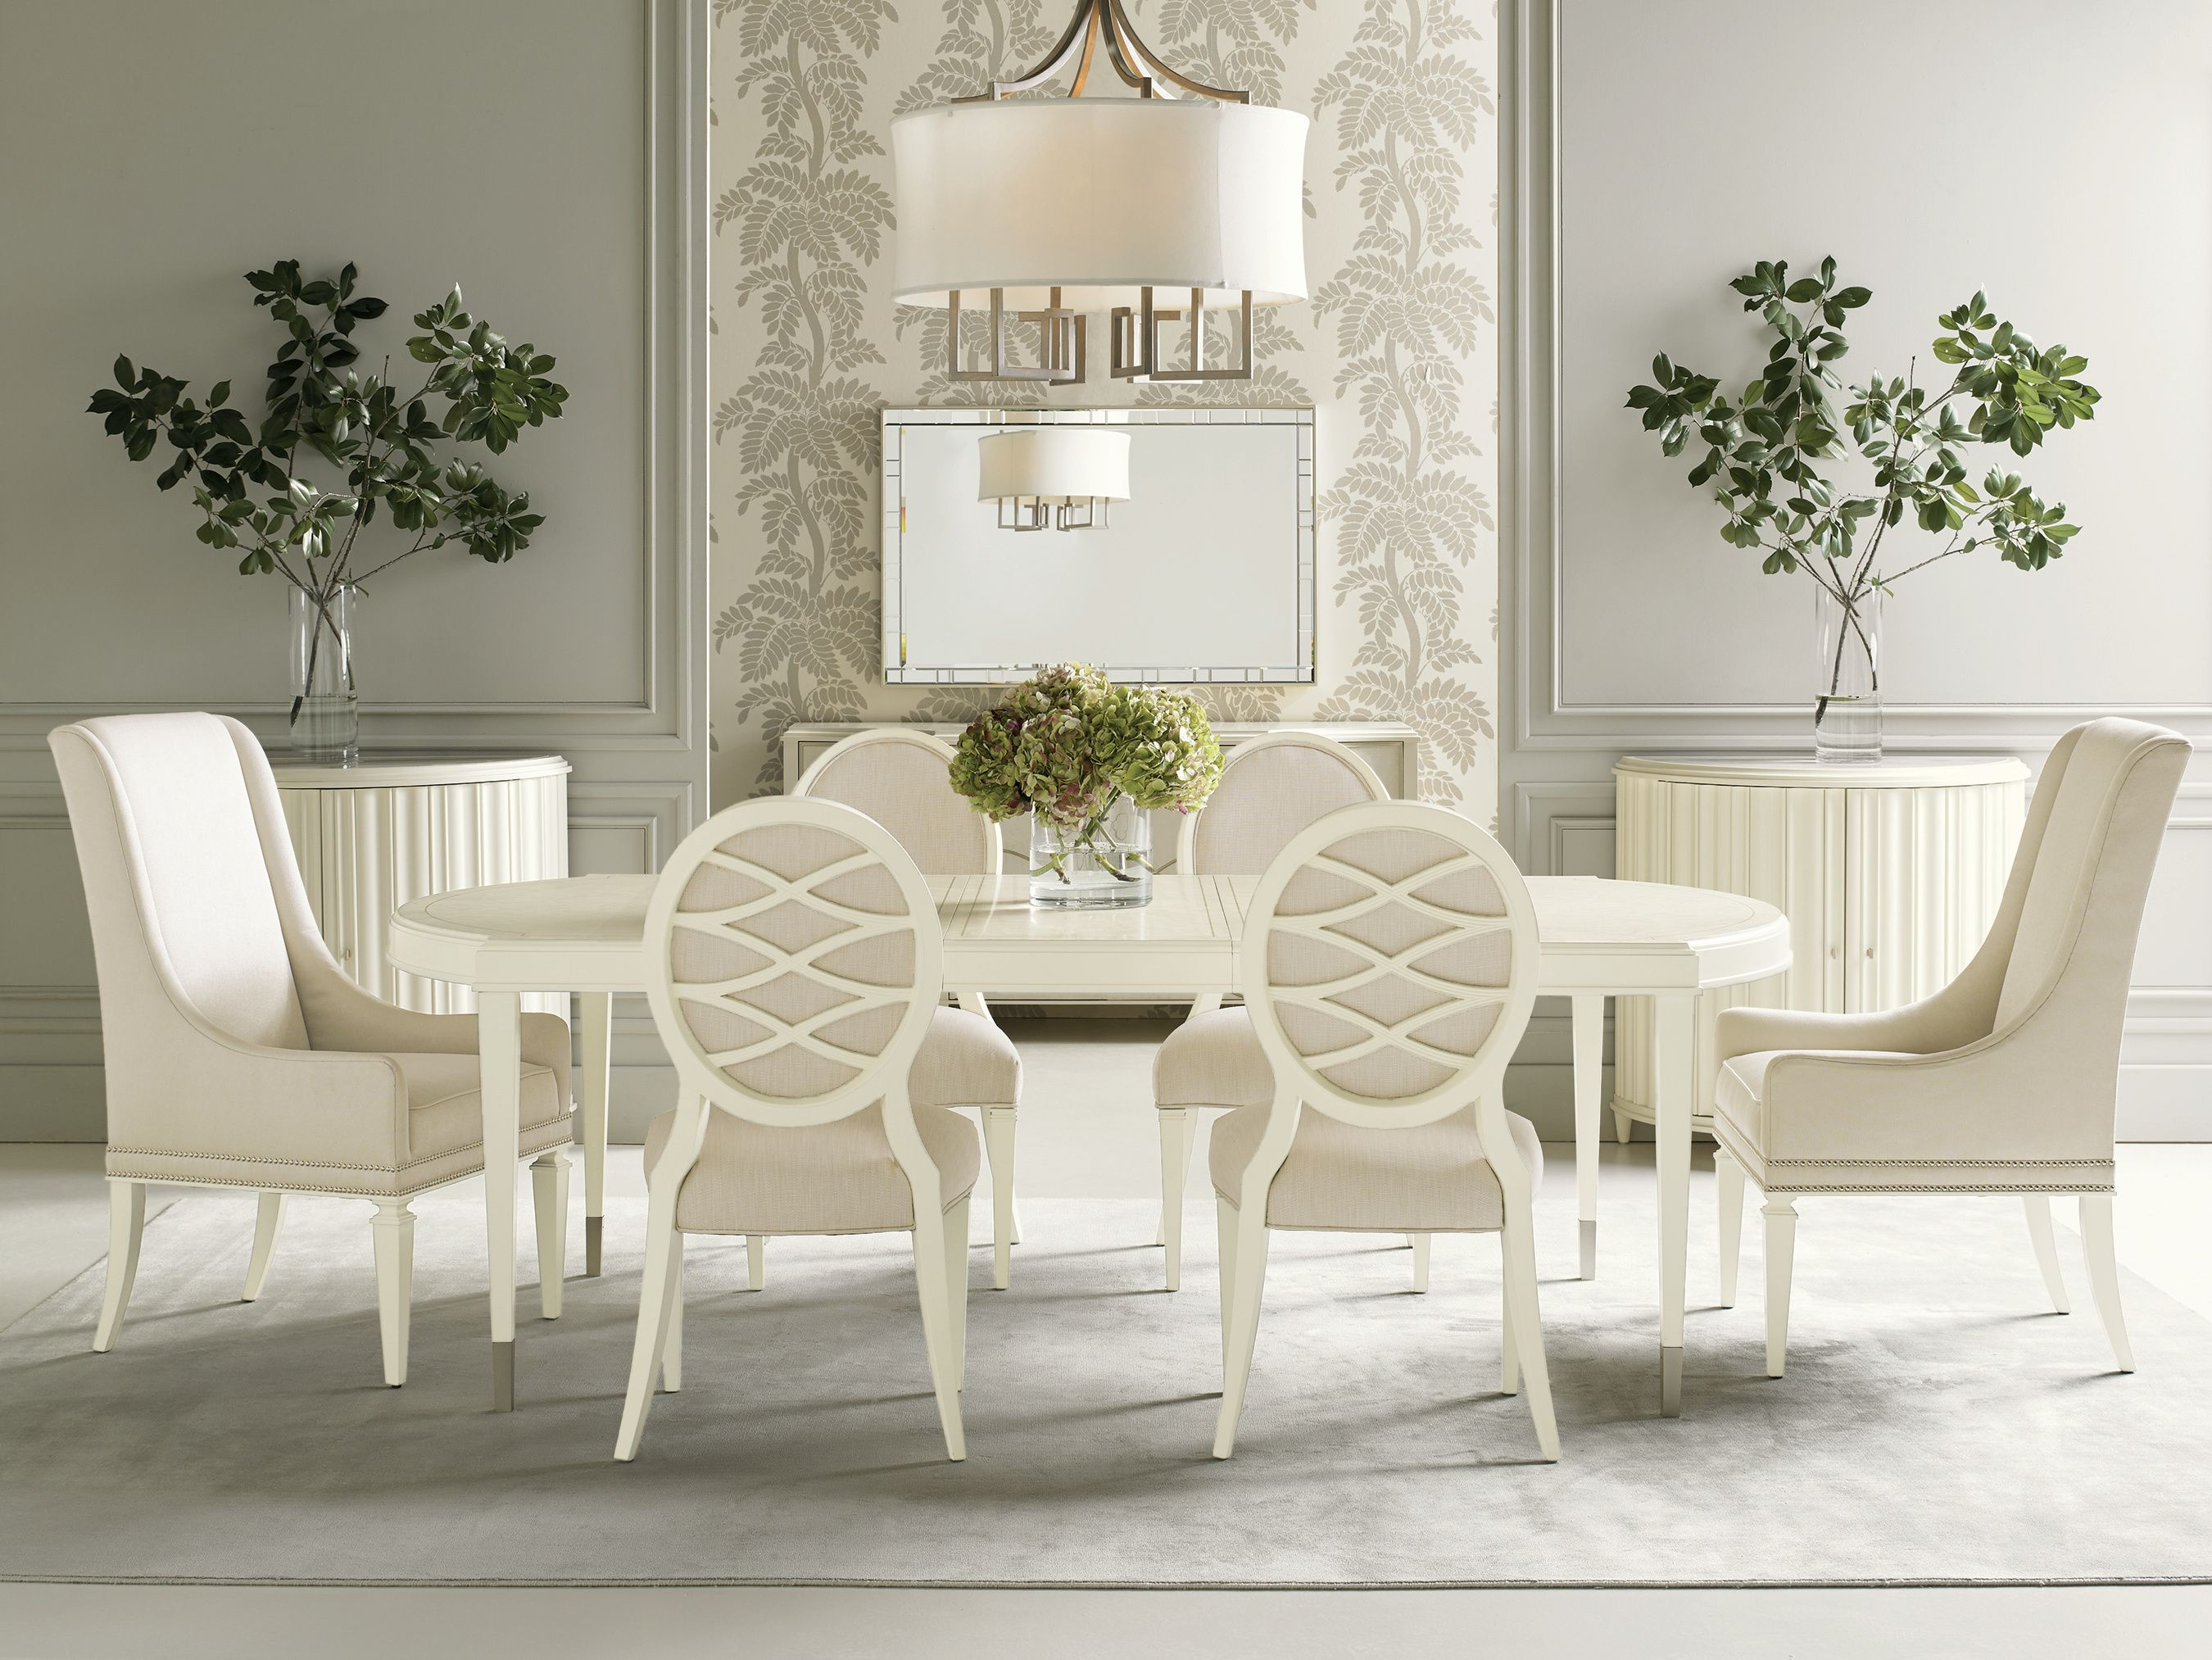 Eye See You Mirror Color Mirrored In 2020 Classic Dining Room Luxury Home Decor Shabby Chic Dining Room